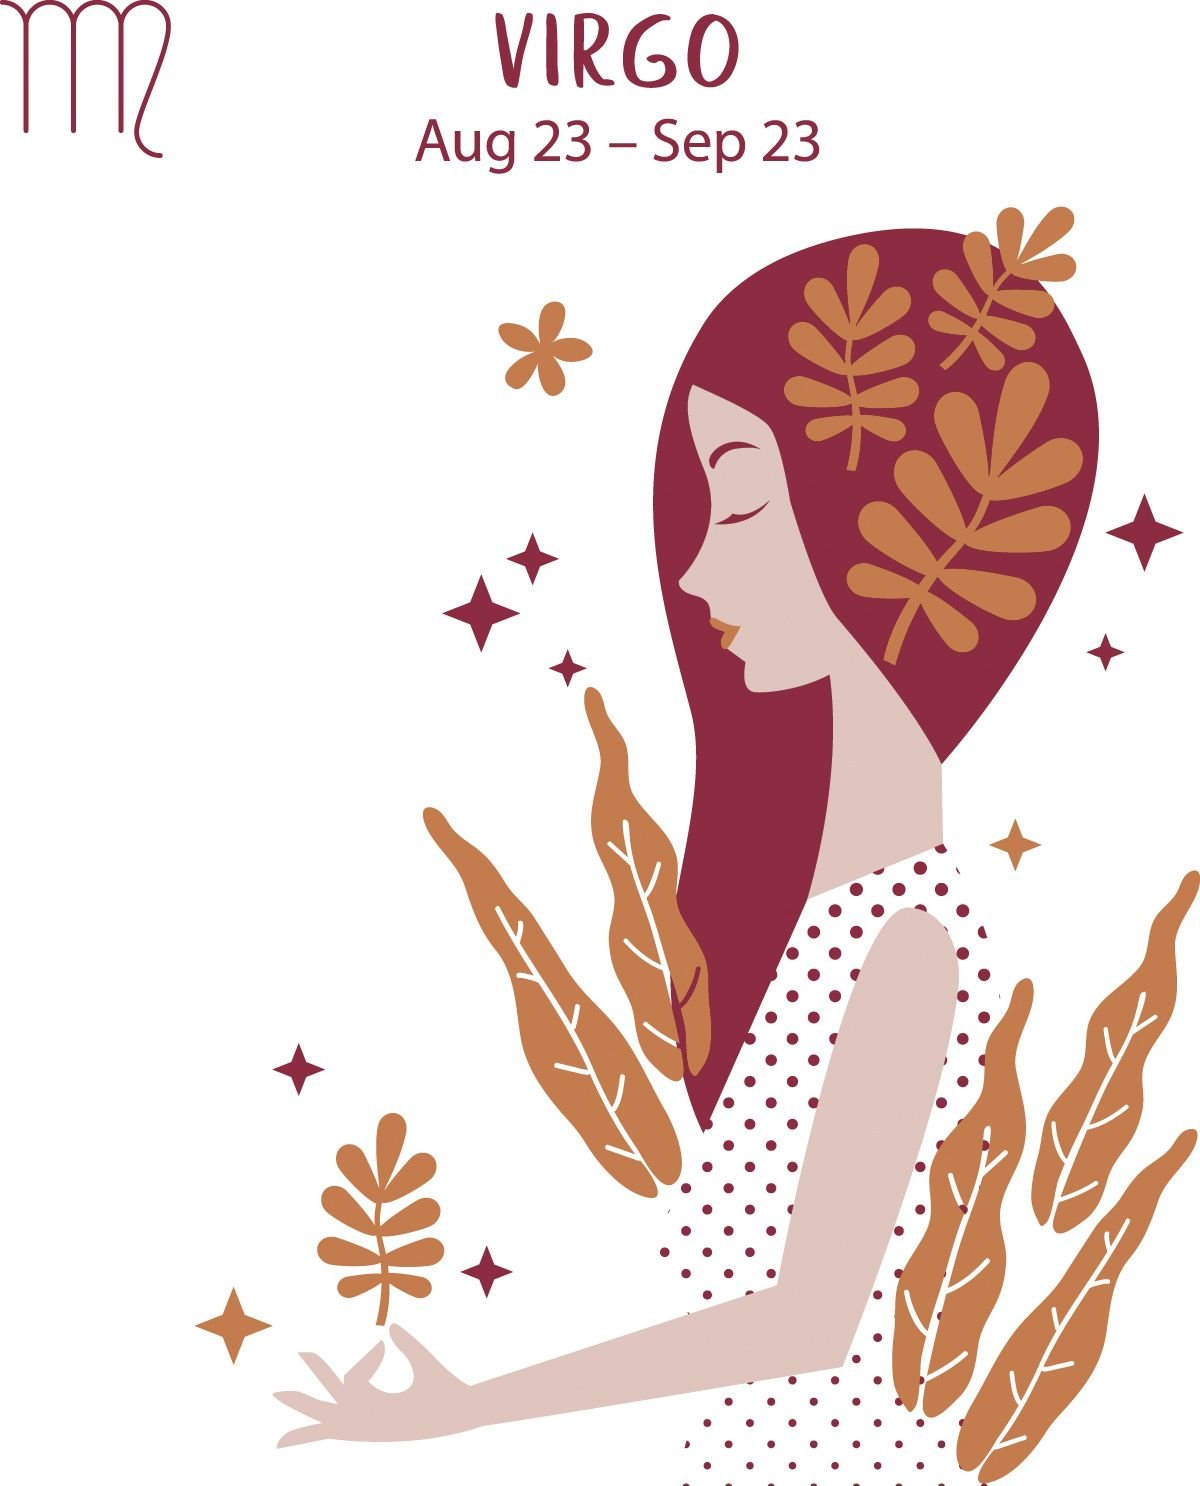 Virgo (Aug 23 - Sep 23) represented by a woman surrounded by greenery.